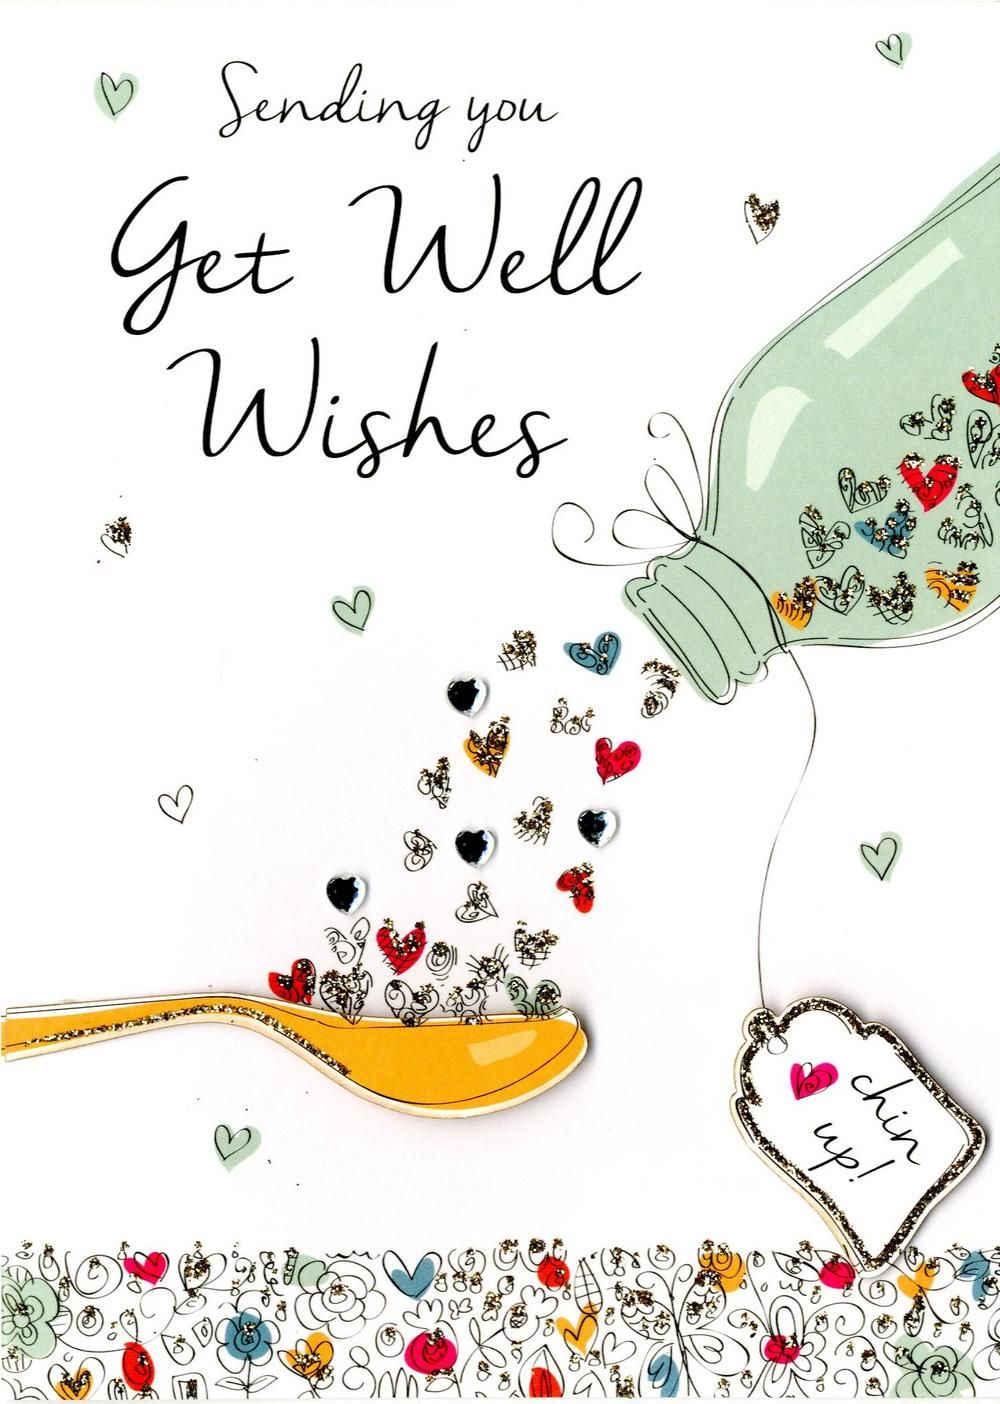 Get Well Wishes Greeting Card.